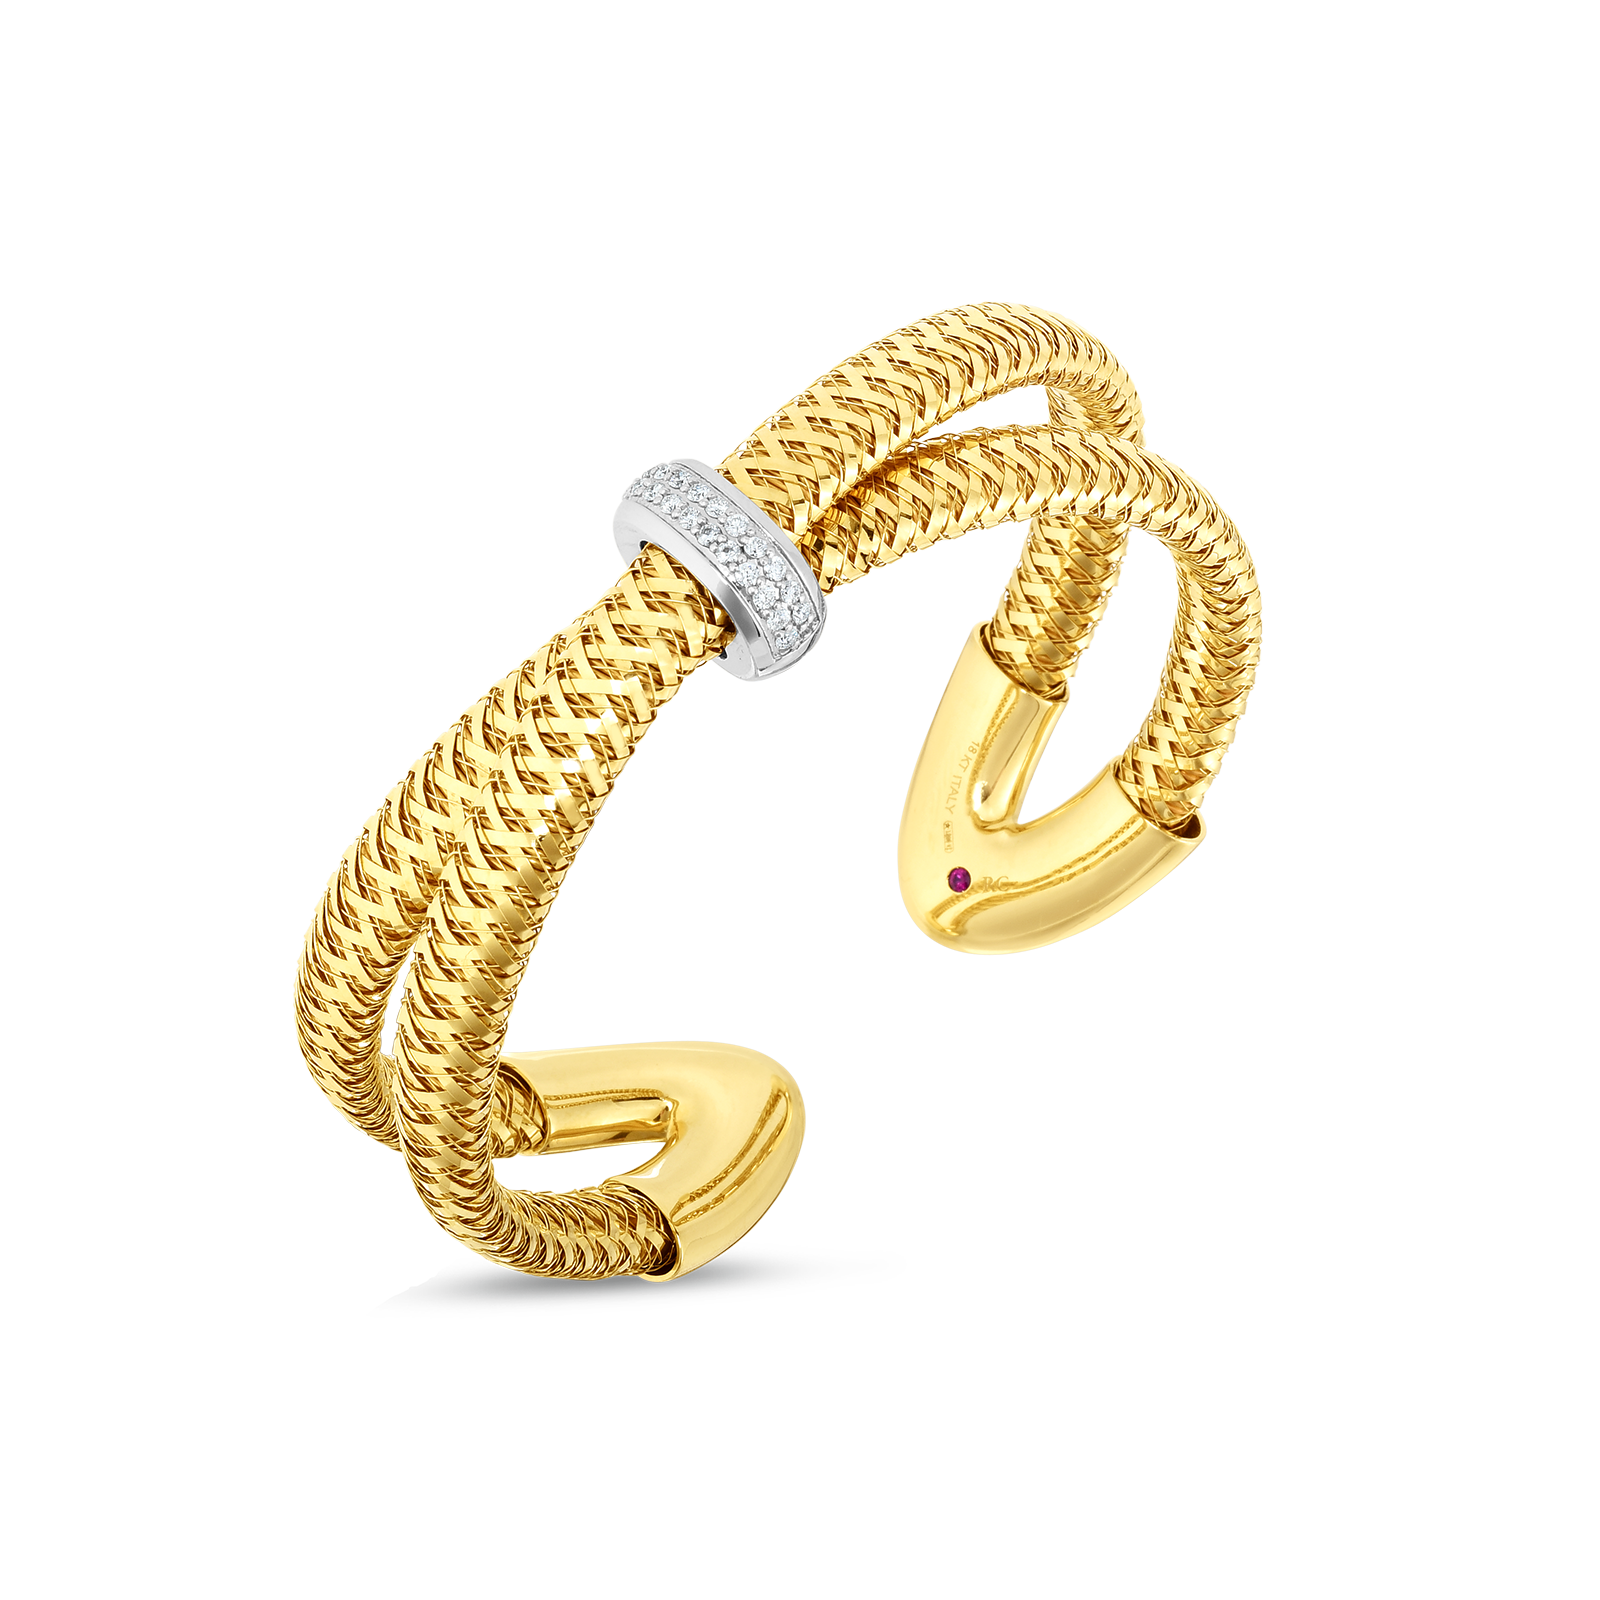 18k Gold & Diamond Primavera Crossover Cuff Bangle